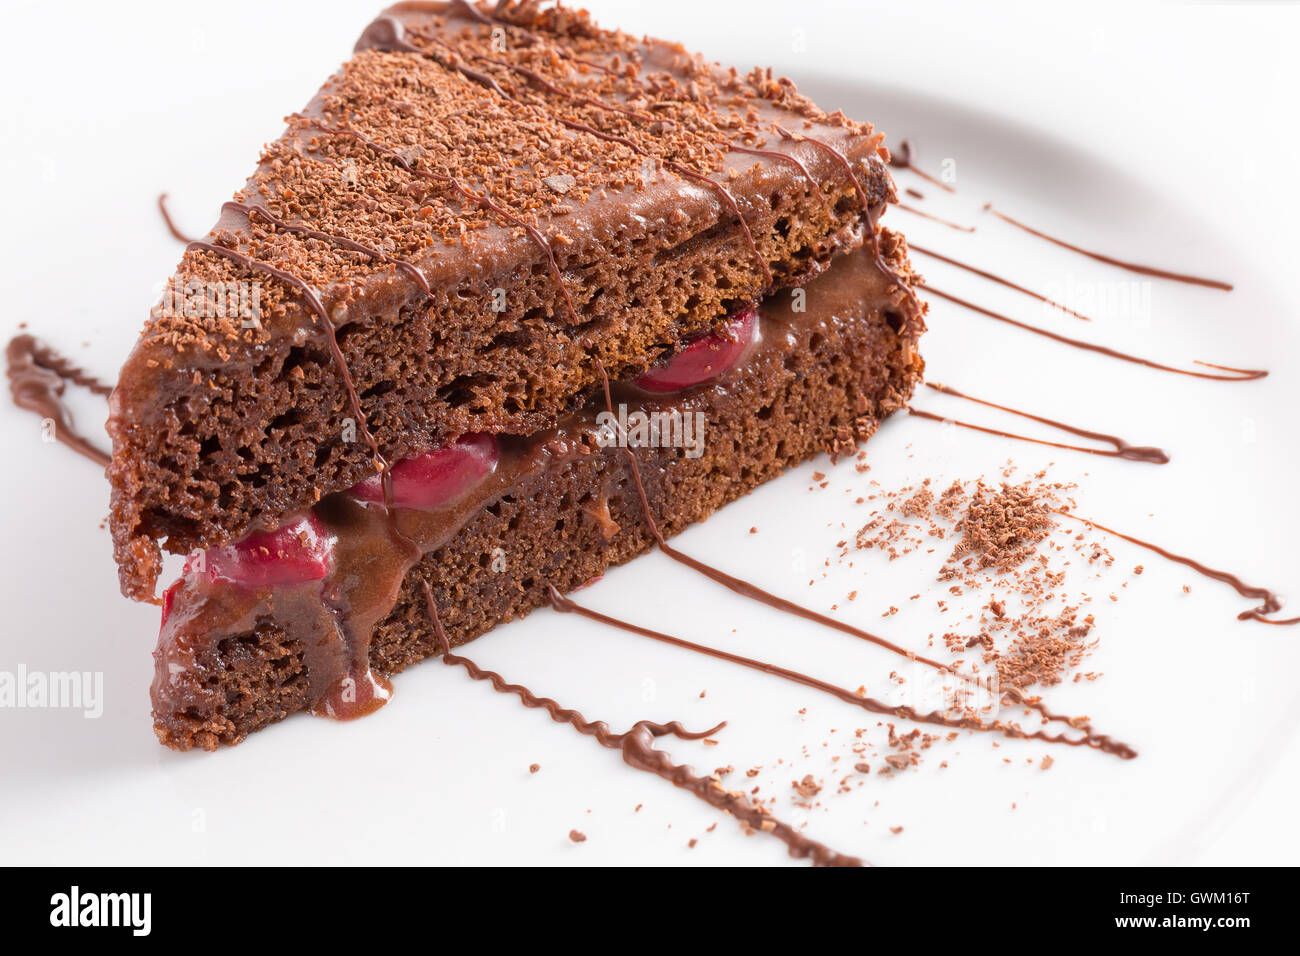 chocolate cheese cake with cherries on white plate. - Stock Image